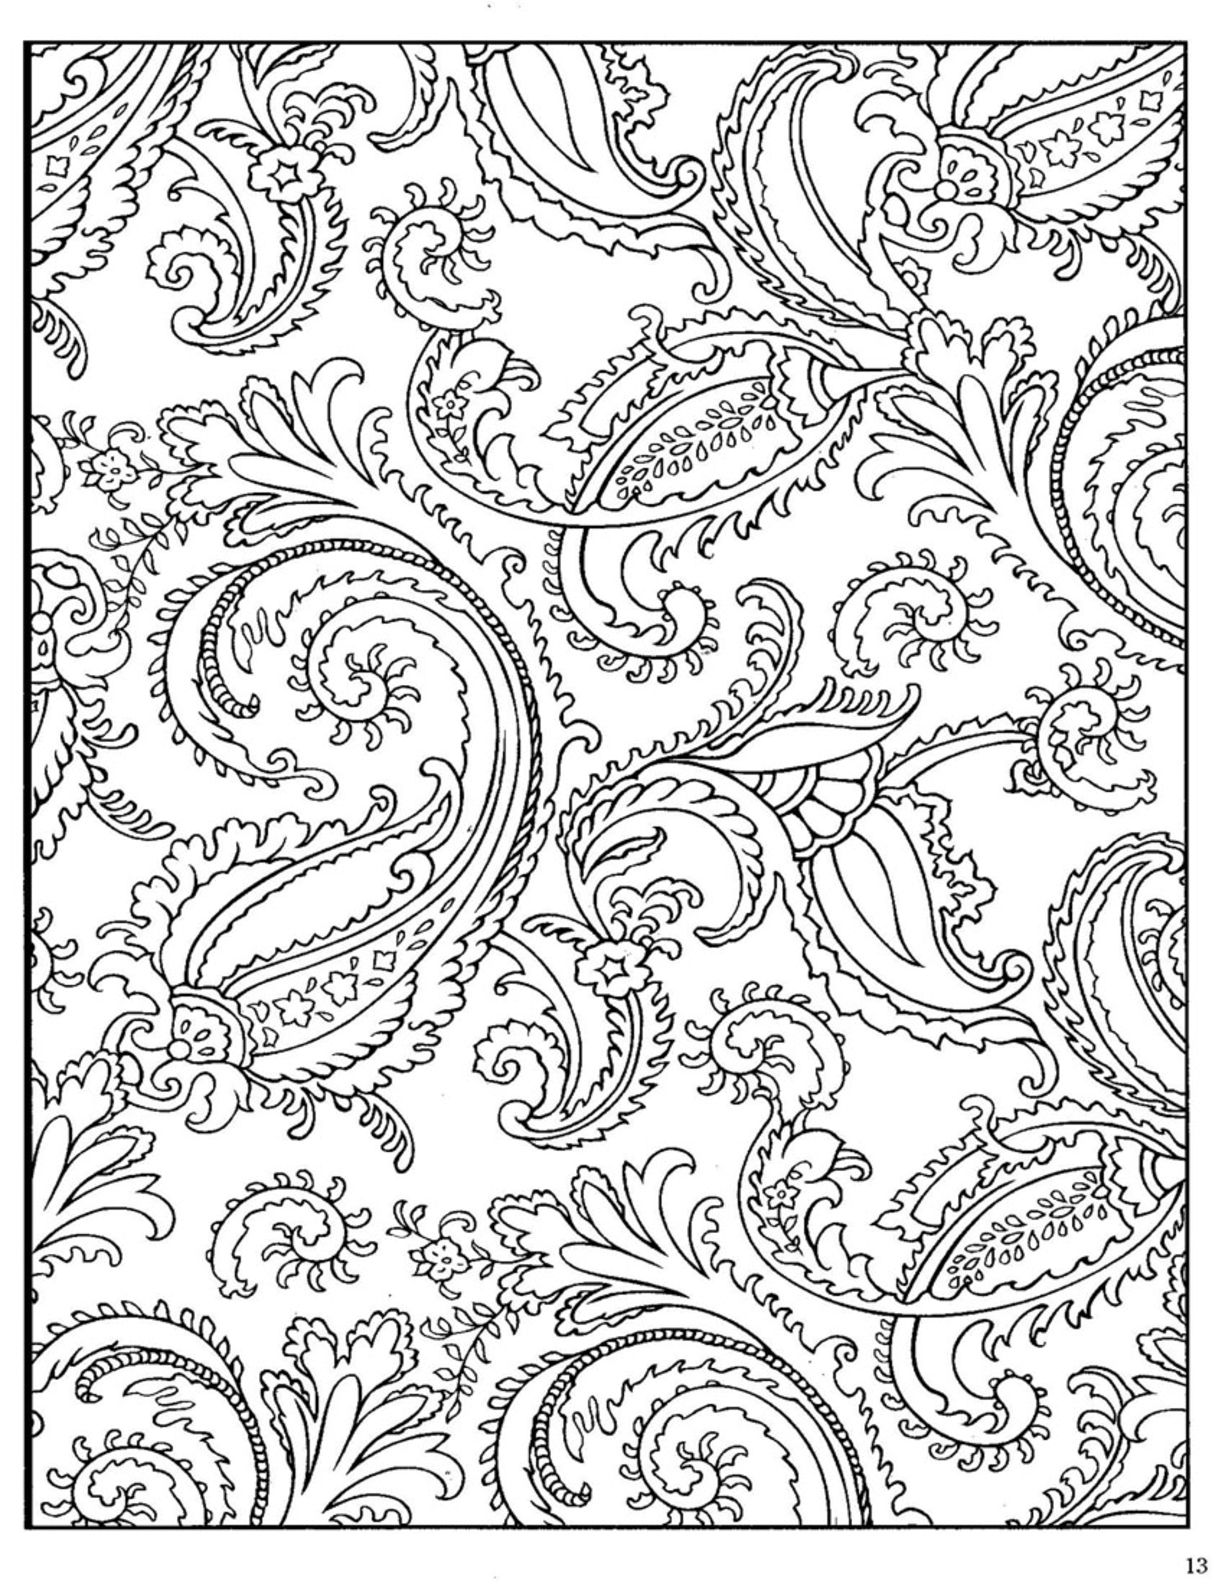 Paisley Coloring Page 85 Paisley Pinterest Paisley design